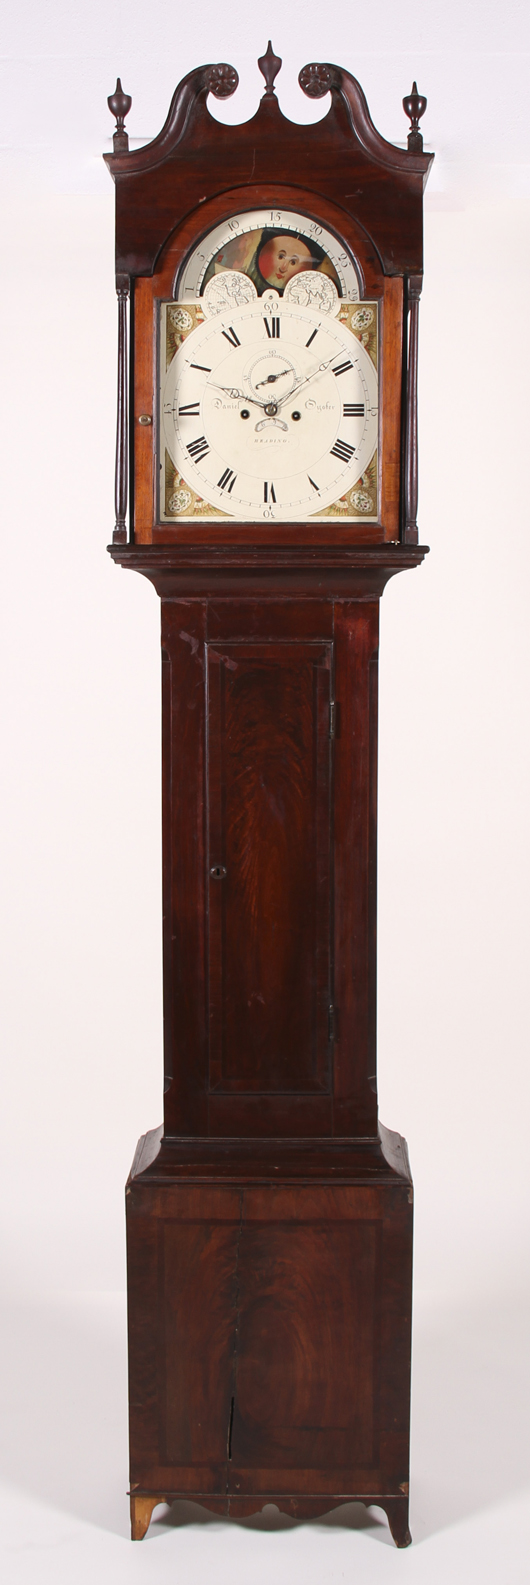 Federal 1822 walnut Daniel Oyster tall-case clock, Pennsylvania, moon phase dial. Estimate: $2,000-$4,000. Image courtesy Myers' Antiques Auction Gallery.